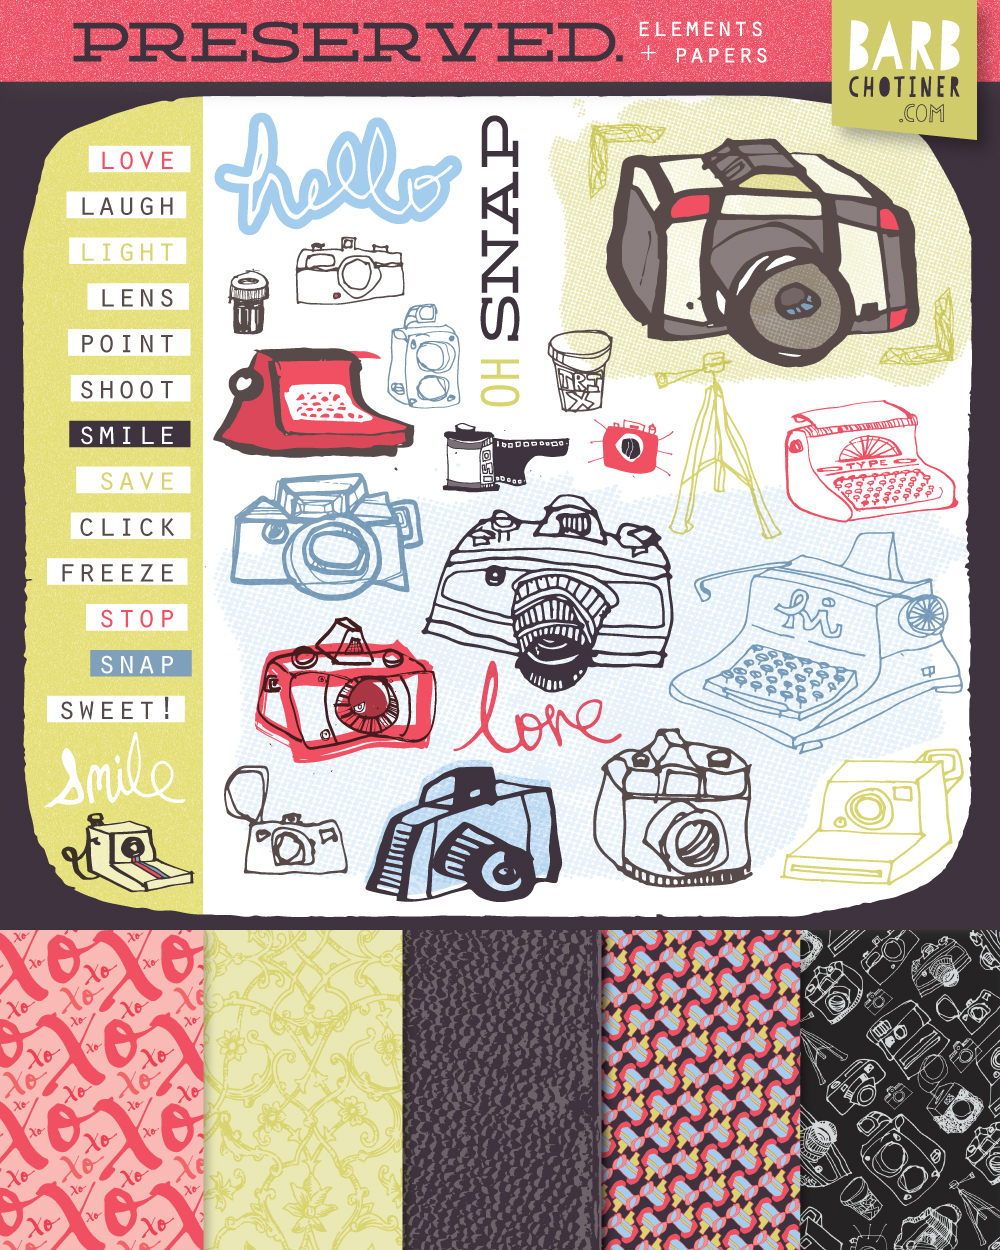 barbara chotiner | art for scrapbook collection - featuring retro camera / typewriter art